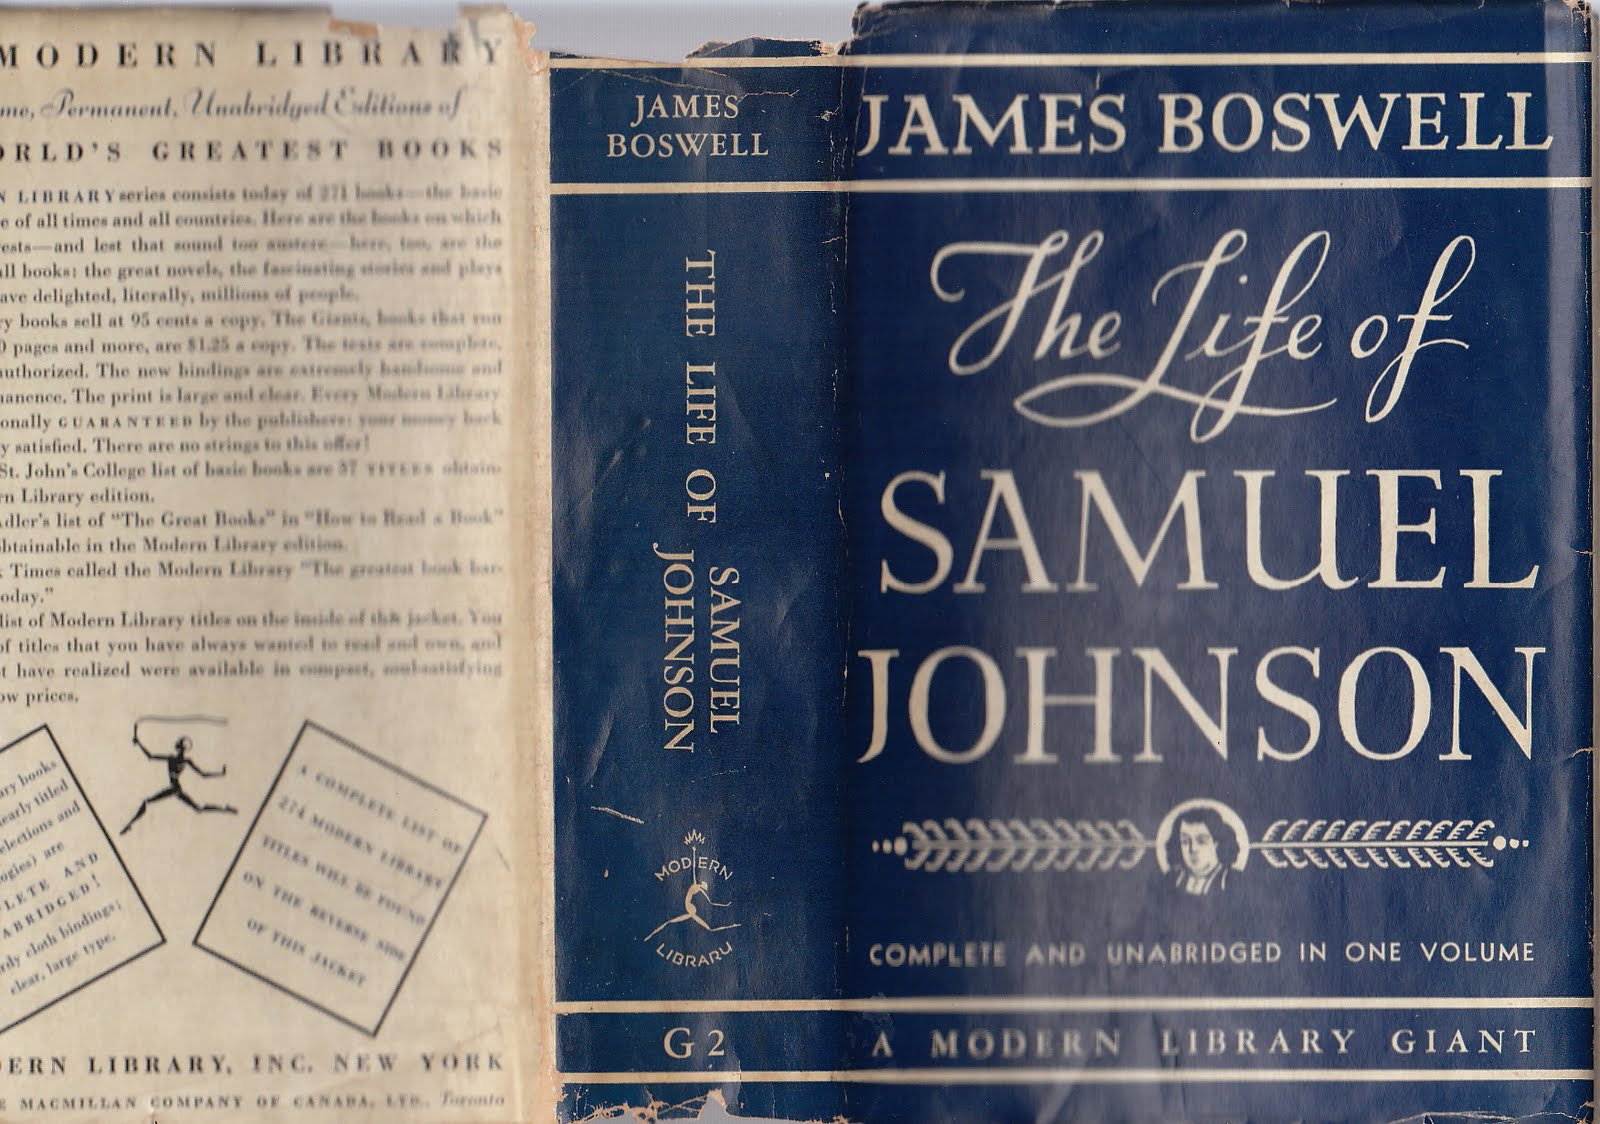 an introduction to the life of samuel johnson The ever witty samuel johnson was an essayist, biographer and cultural critic  who was a prominent figure in 18th century england learn more.